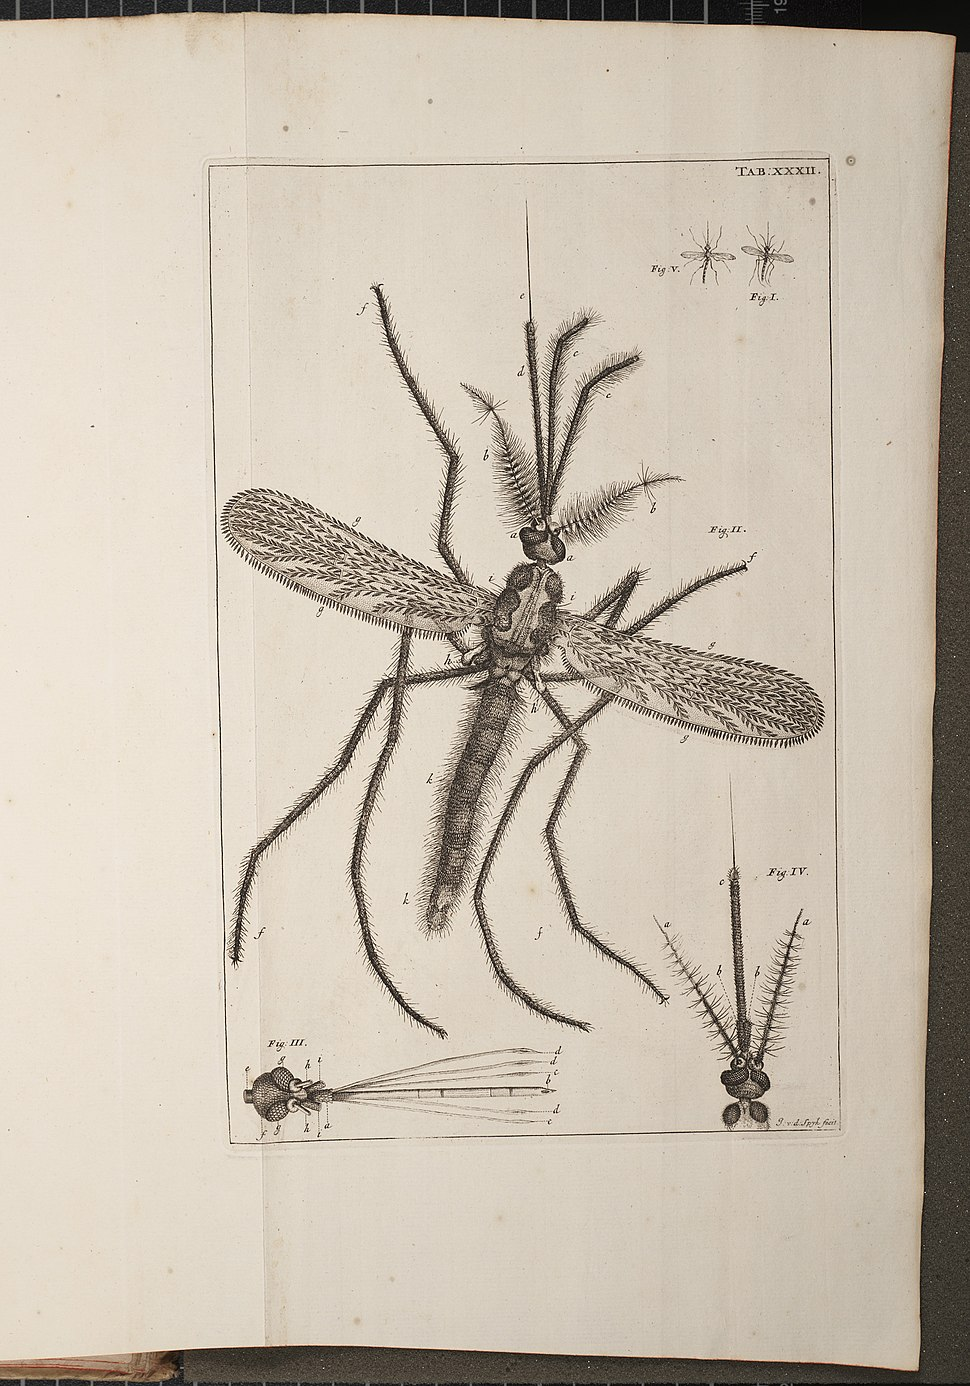 Illustration of a Mosquito from Historia Insectorum Generalis